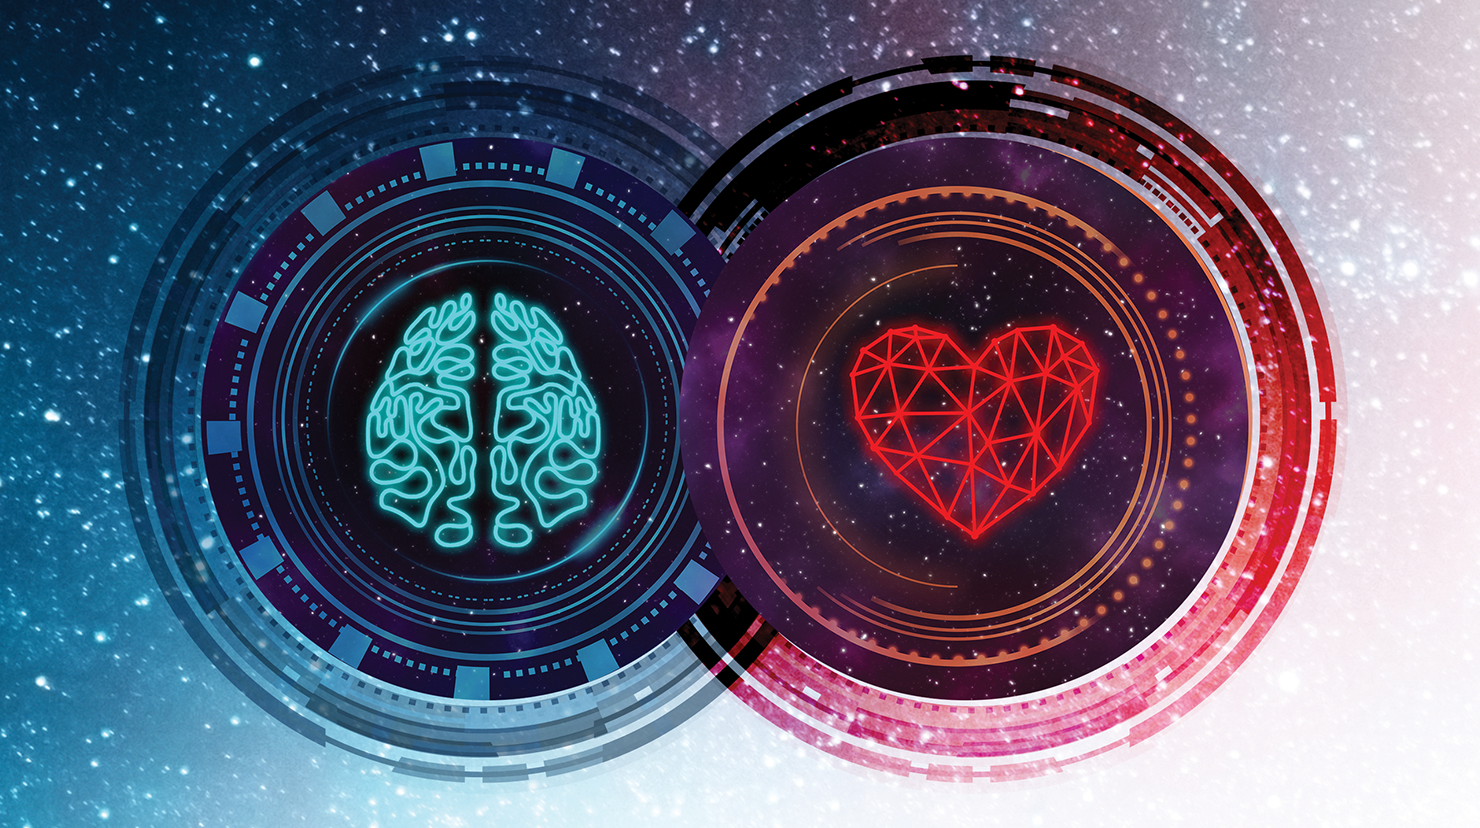 Conceptual image showing a brain and a heart next to each other